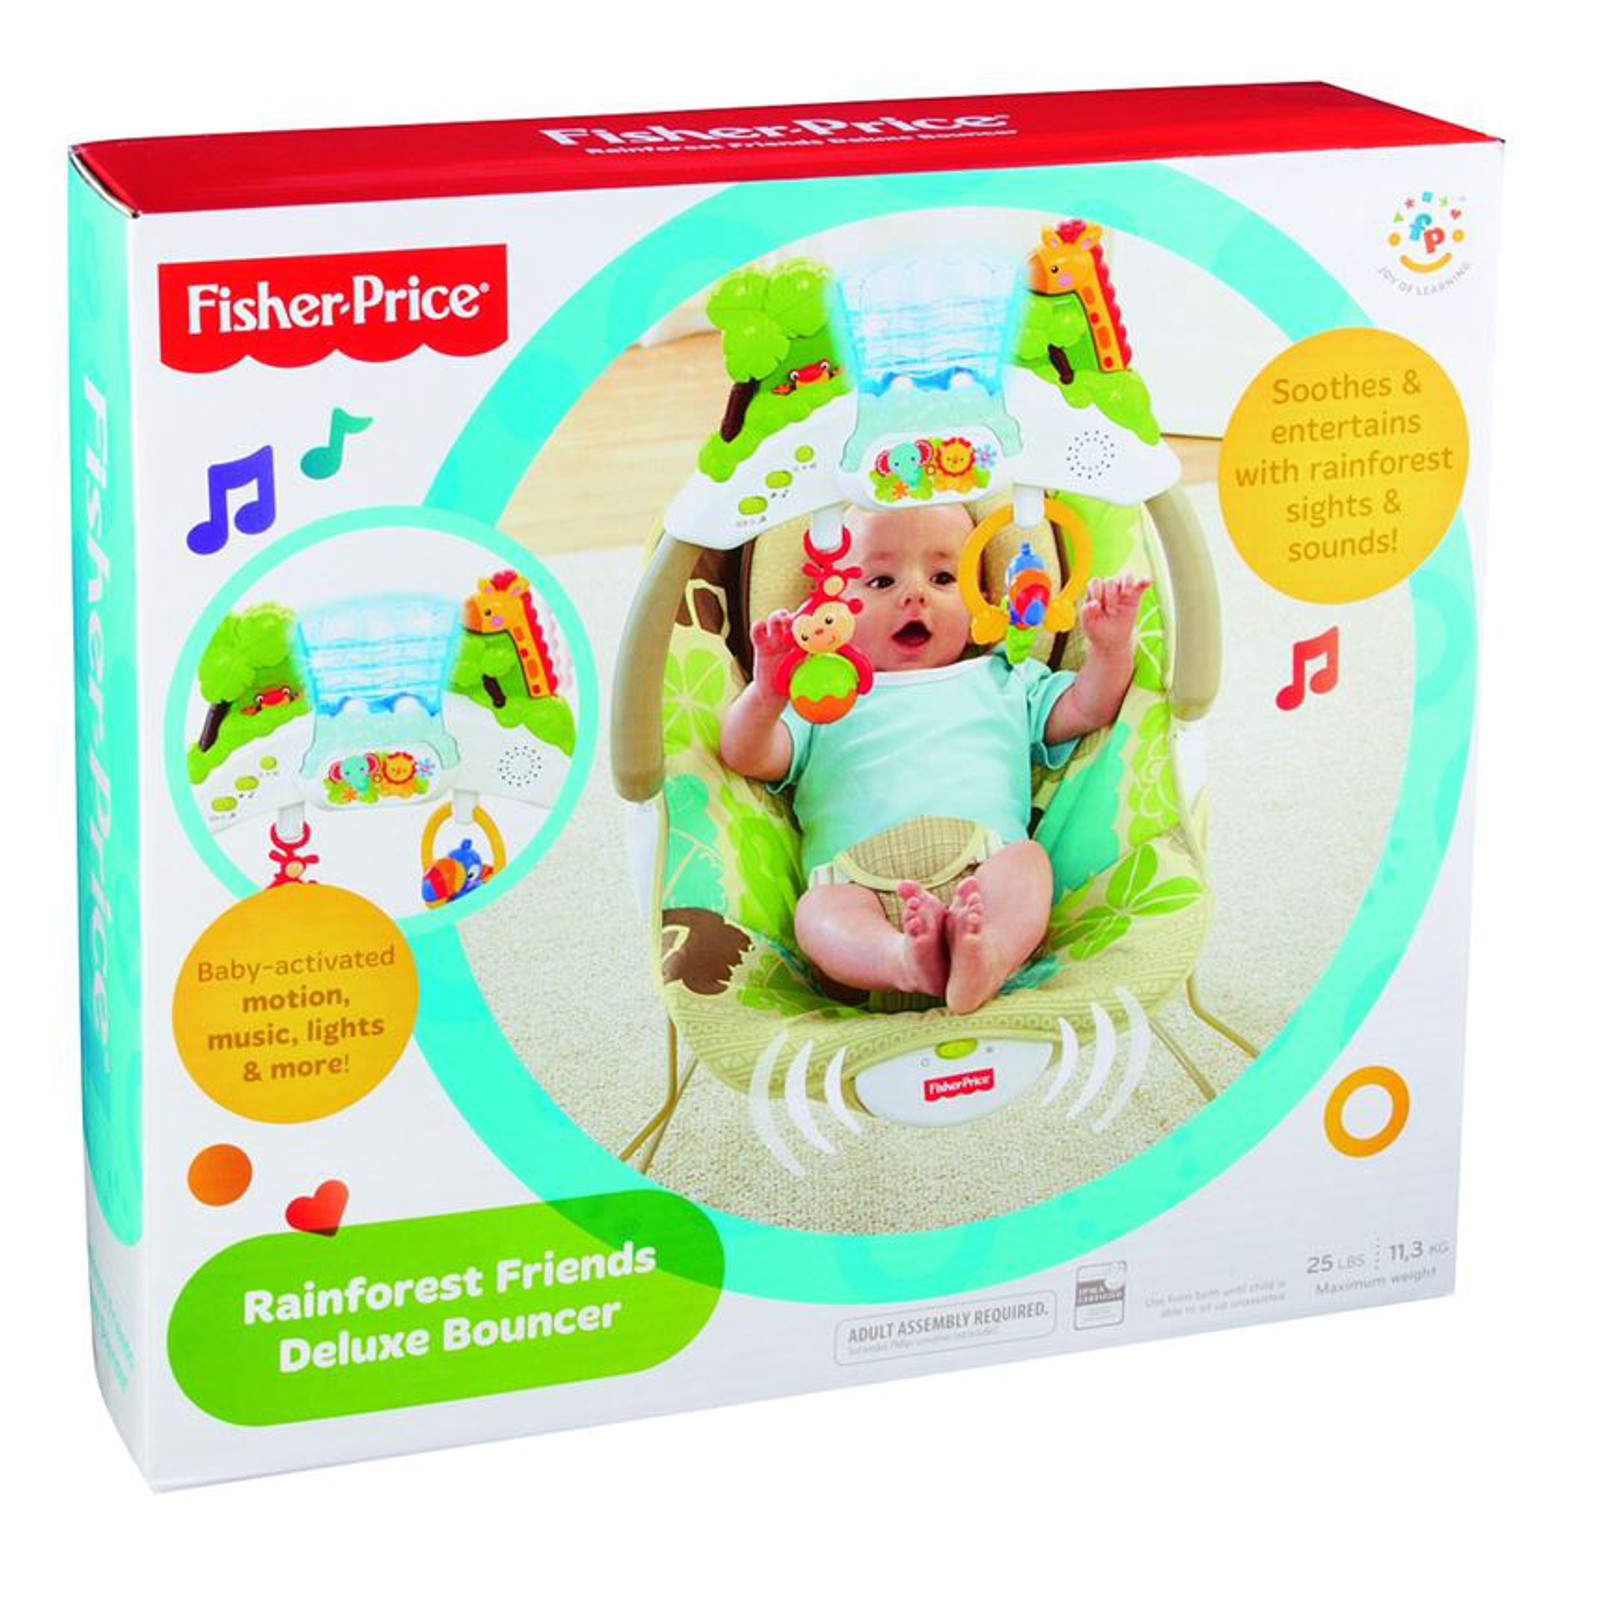 ������-������� Fisher Price ������ �� ������������ ���� BCG48